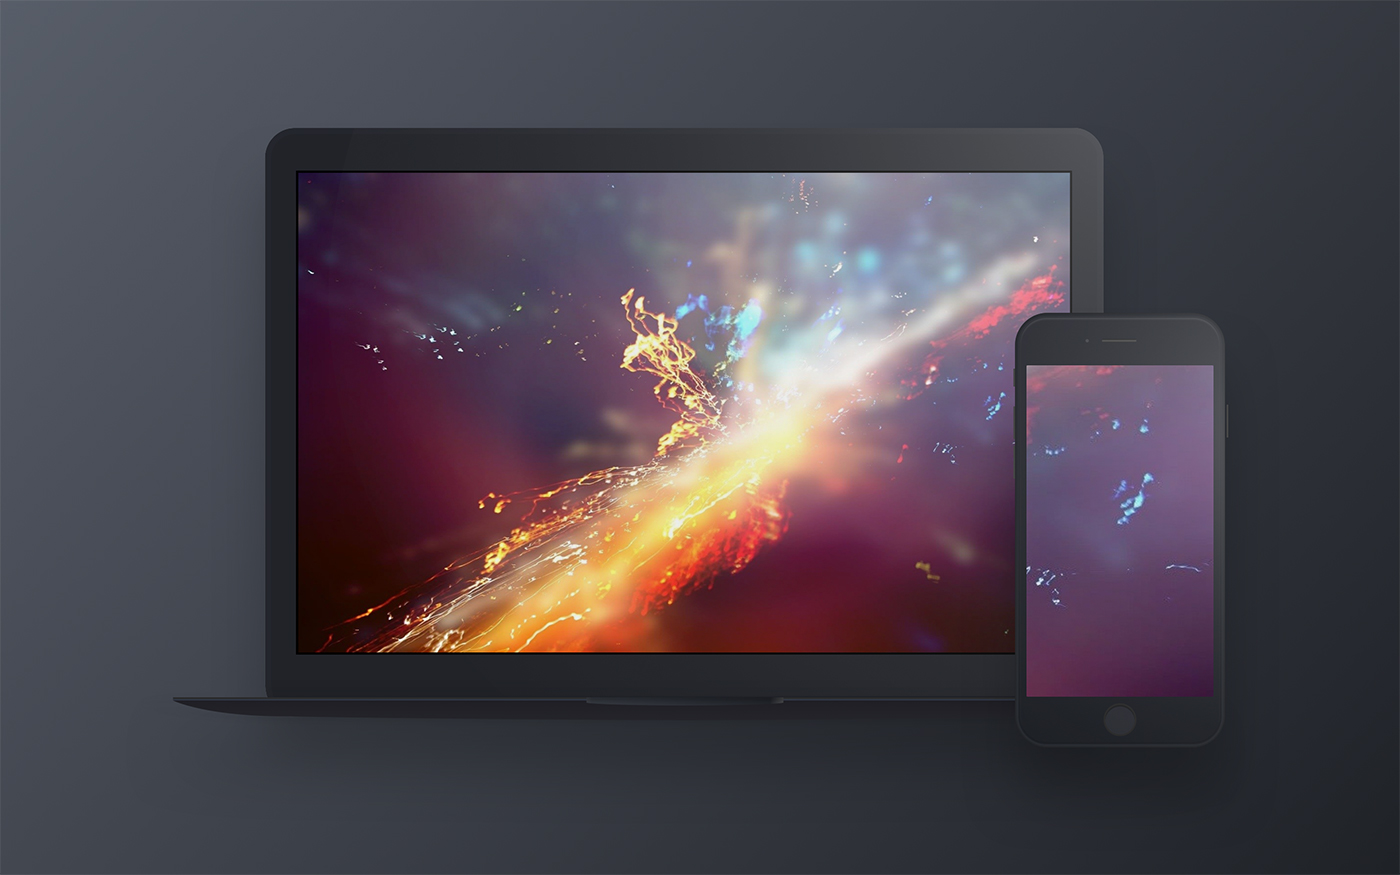 Dark Apple Devices Mockup for Sketch - Macbook & iPhone in front view